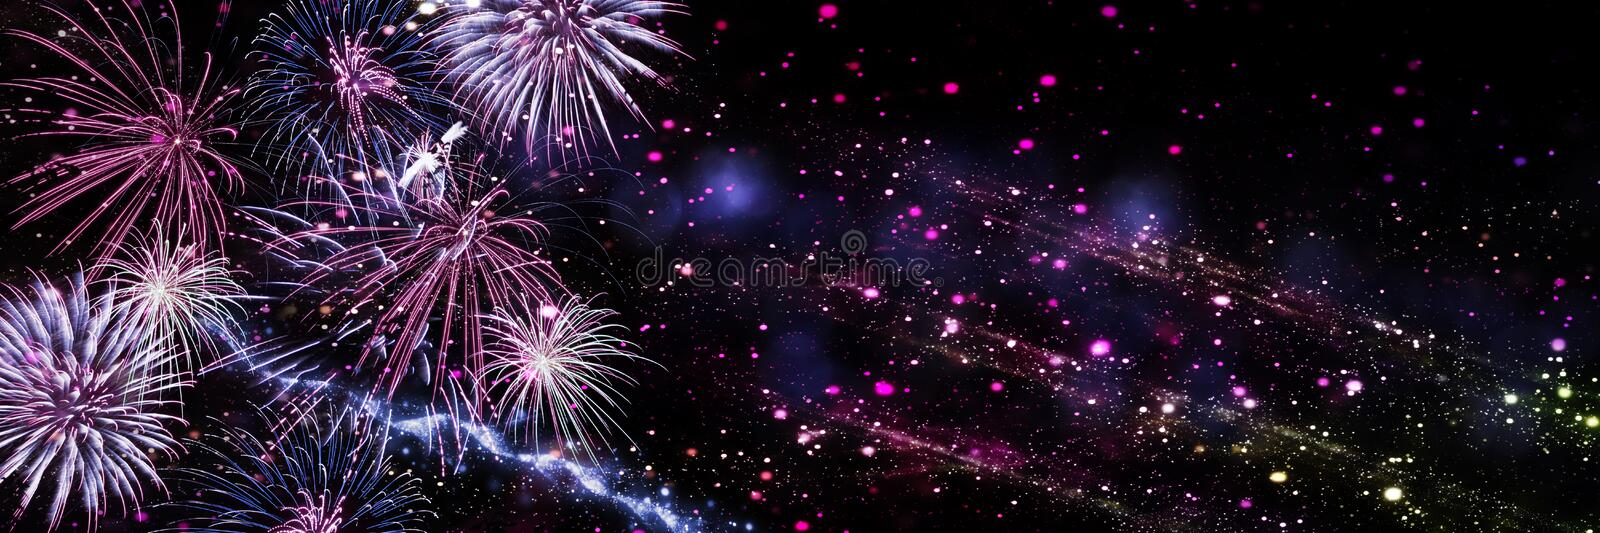 Fireworks, background for New Year stock photo